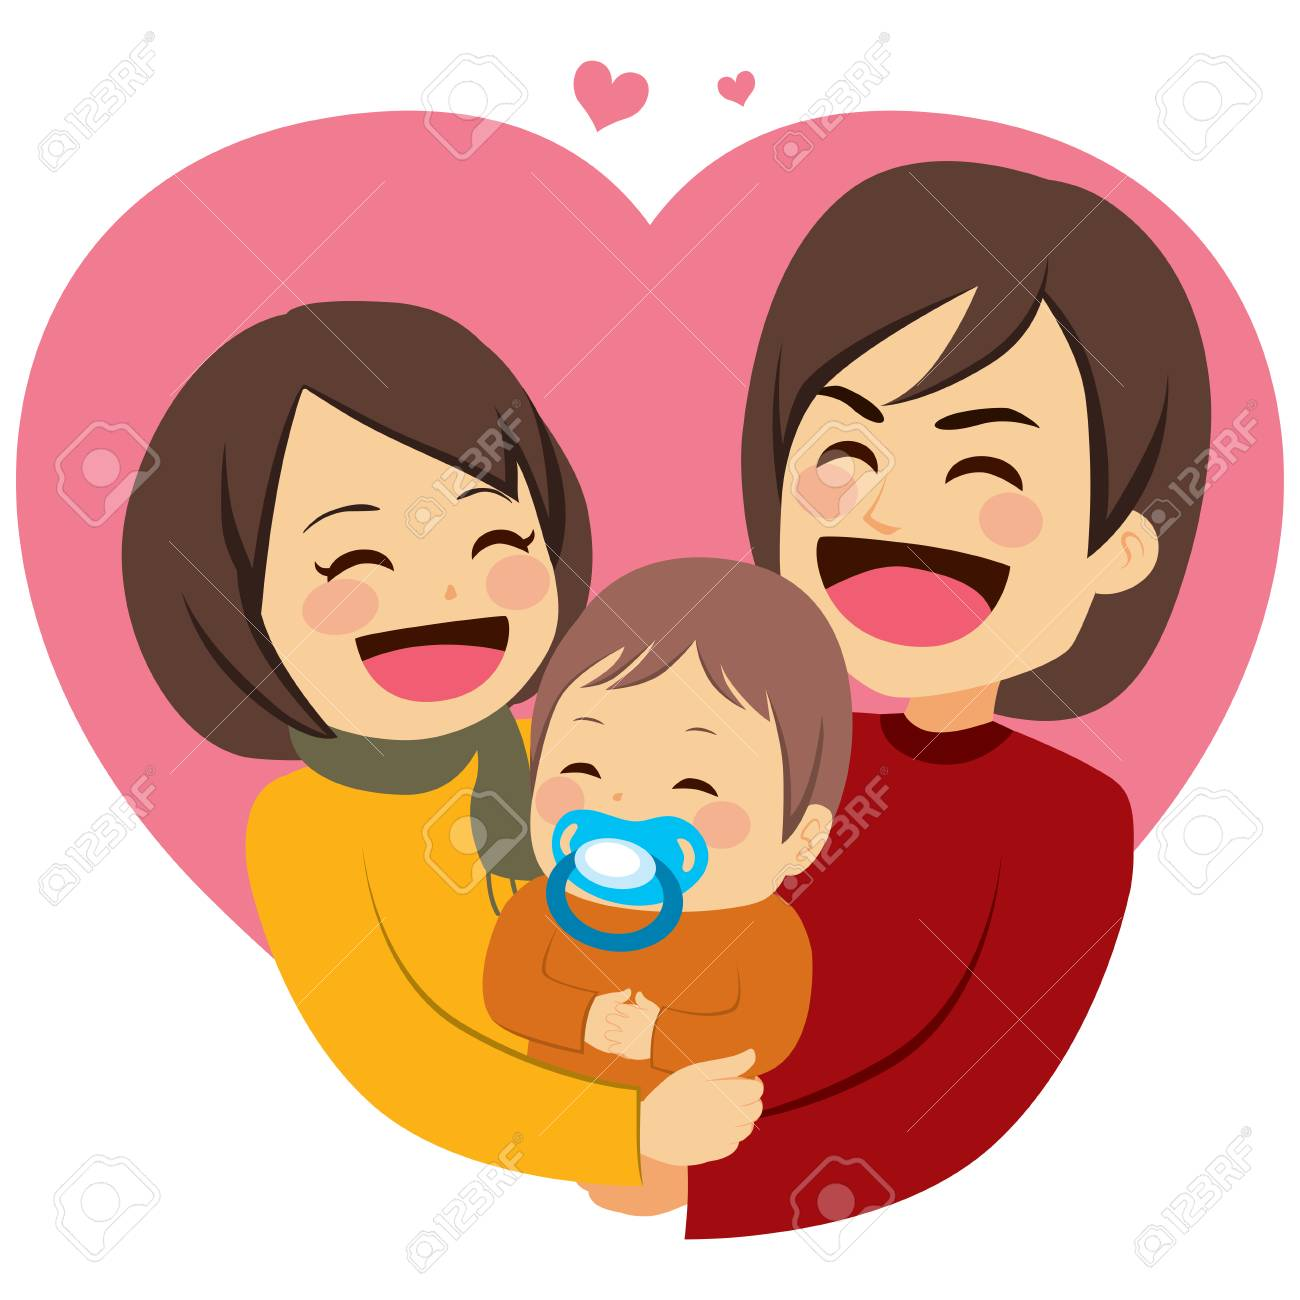 Free download clip art. Hug clipart family